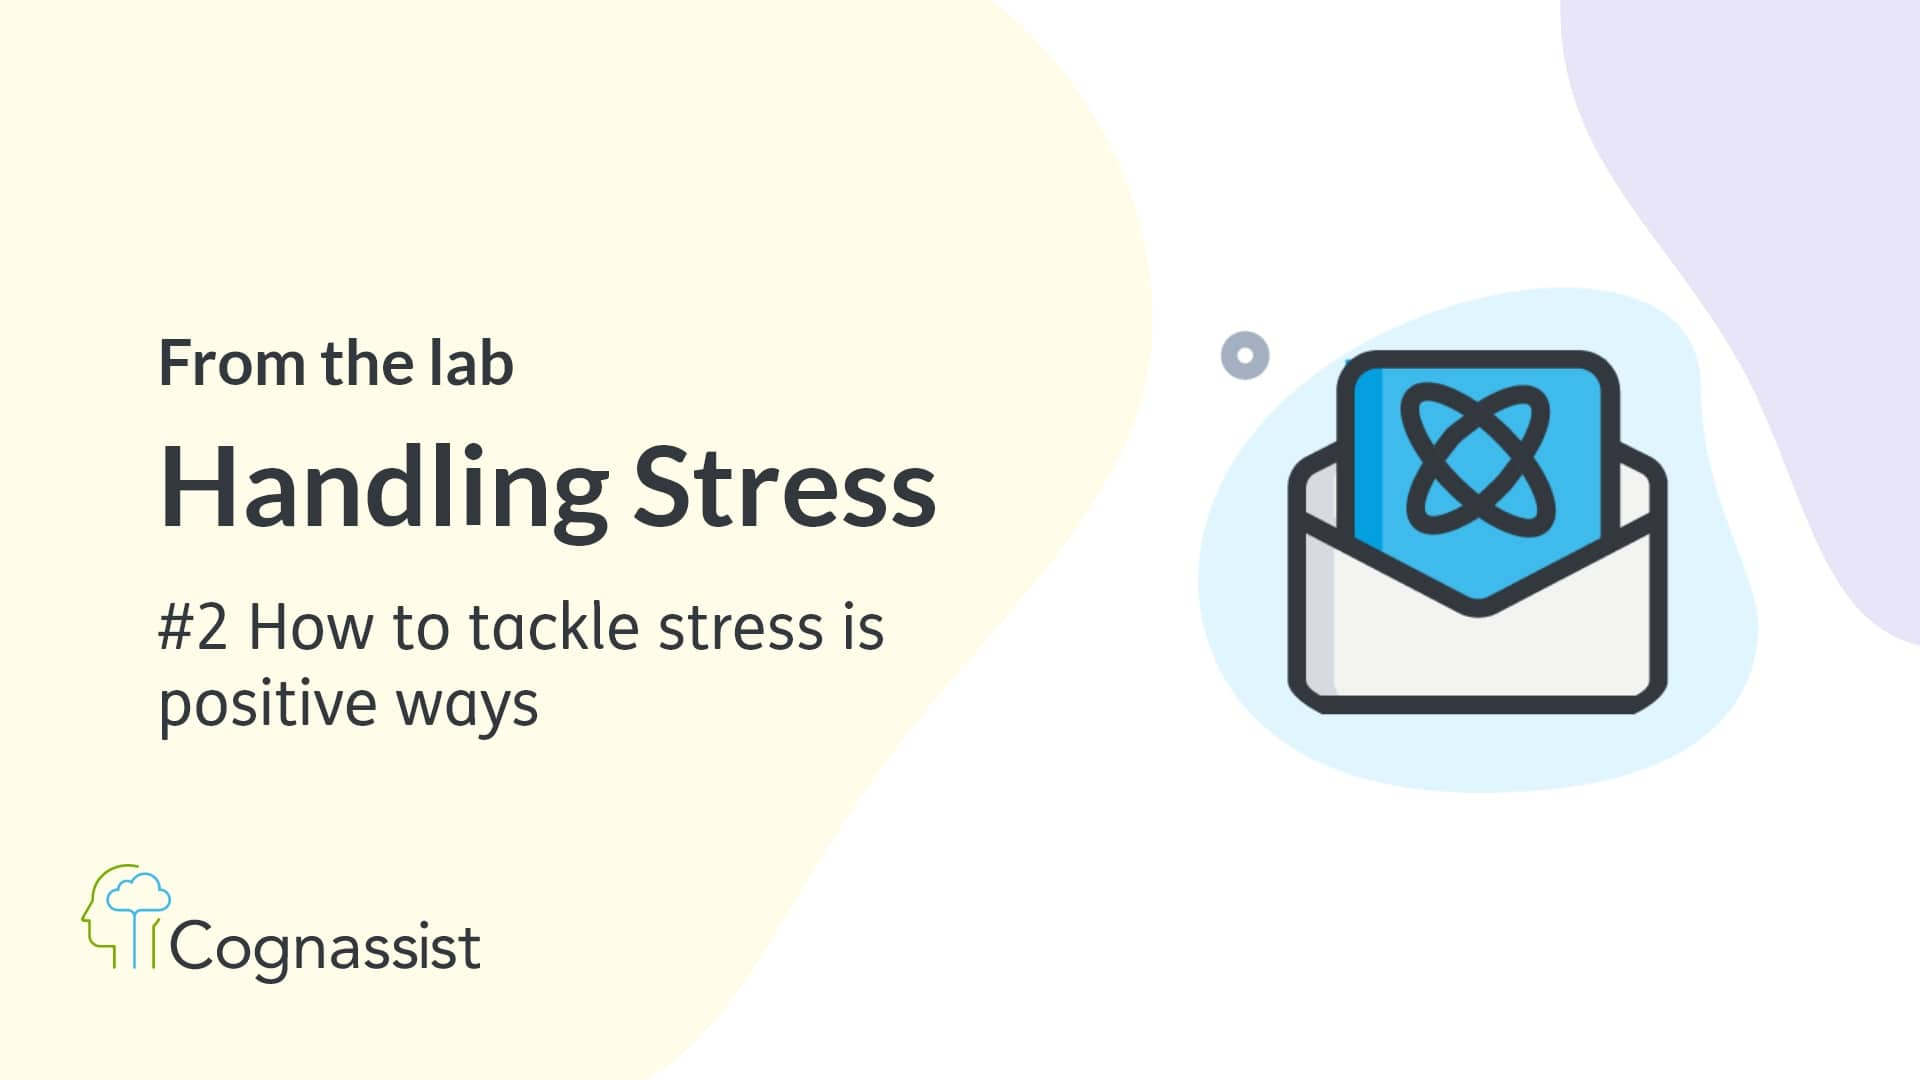 How to tackle stress in positive ways blog post